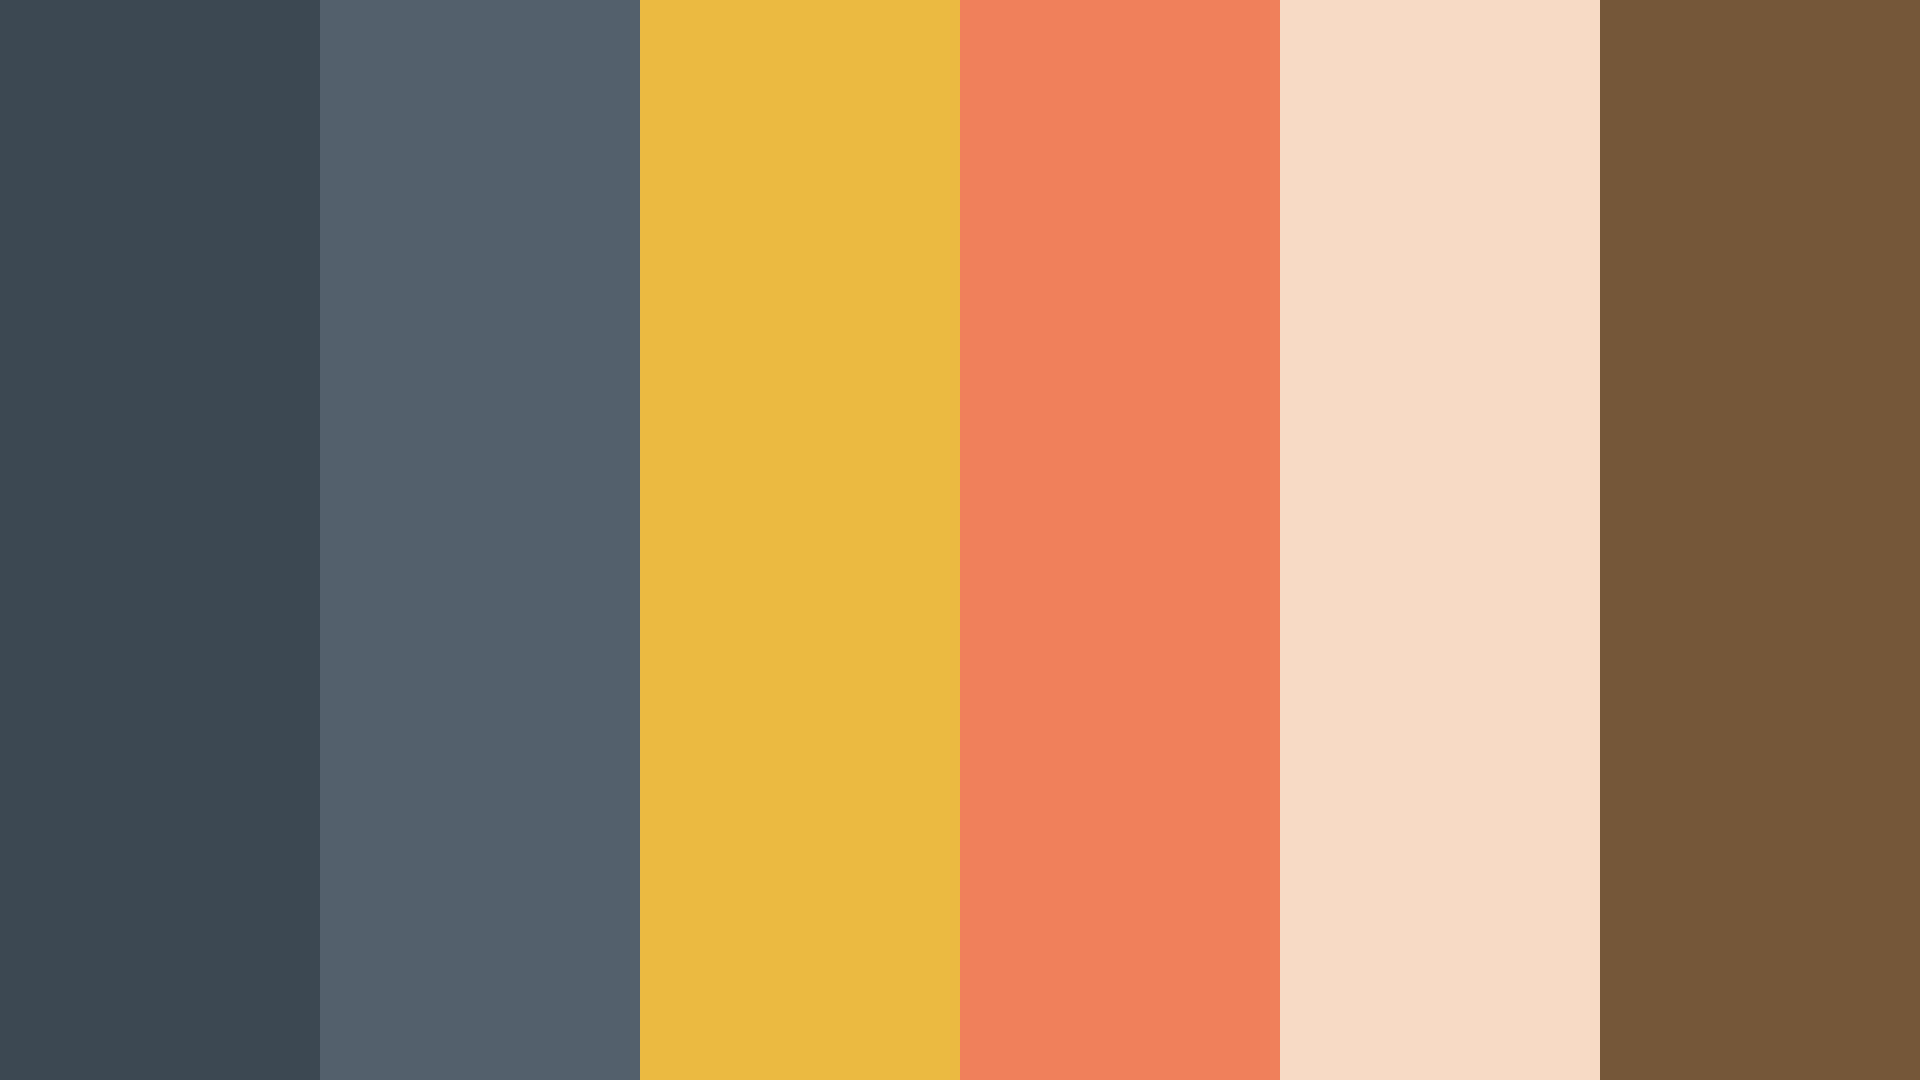 All We Need Color Palette